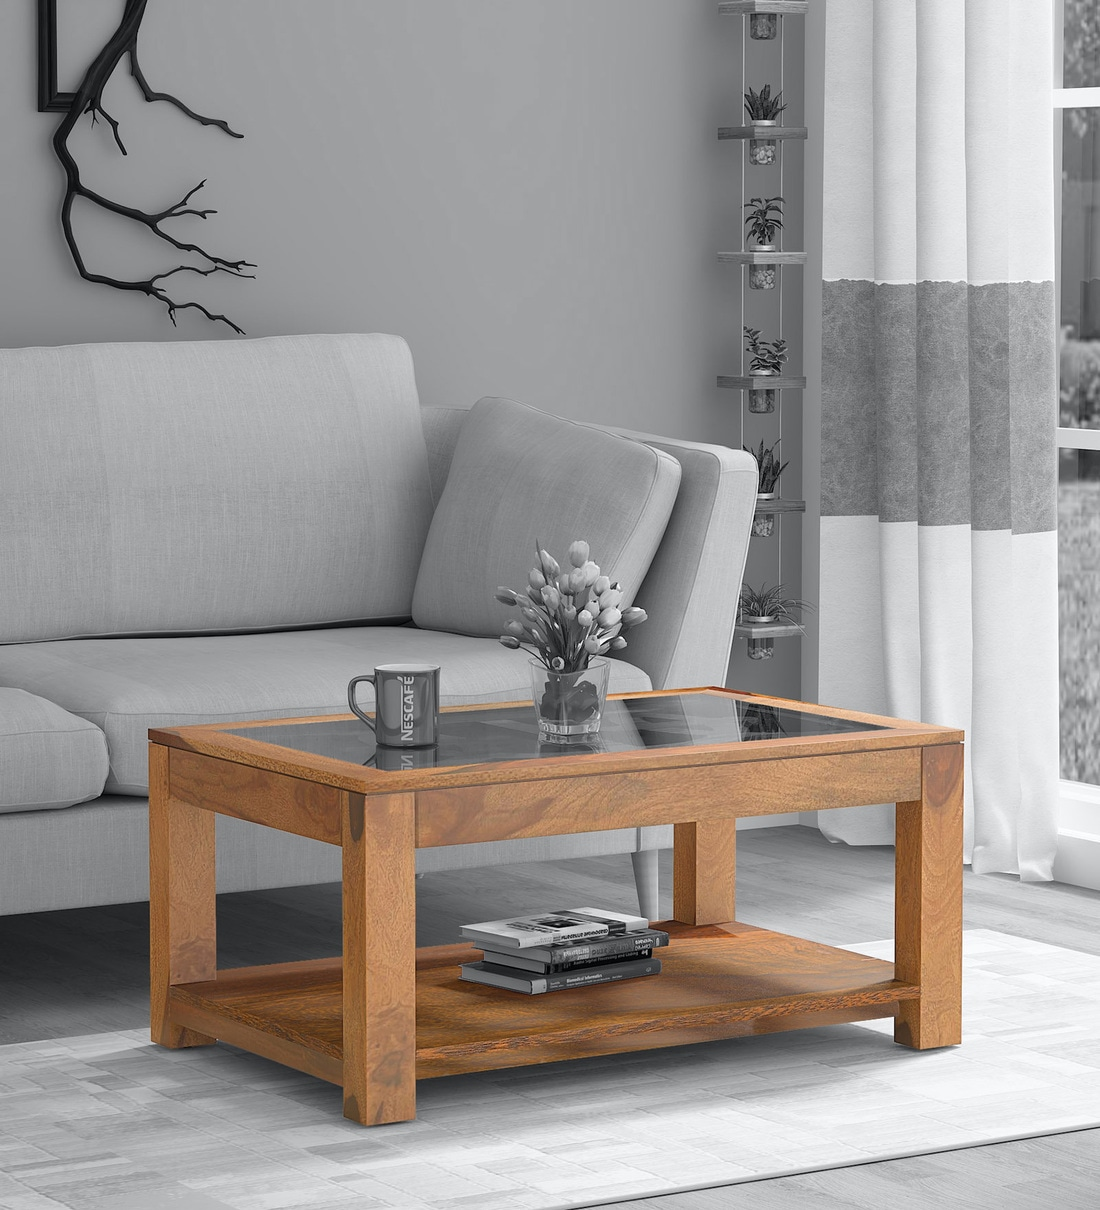 mckenzy solid wood coffee table with glass top in rustic teak finish